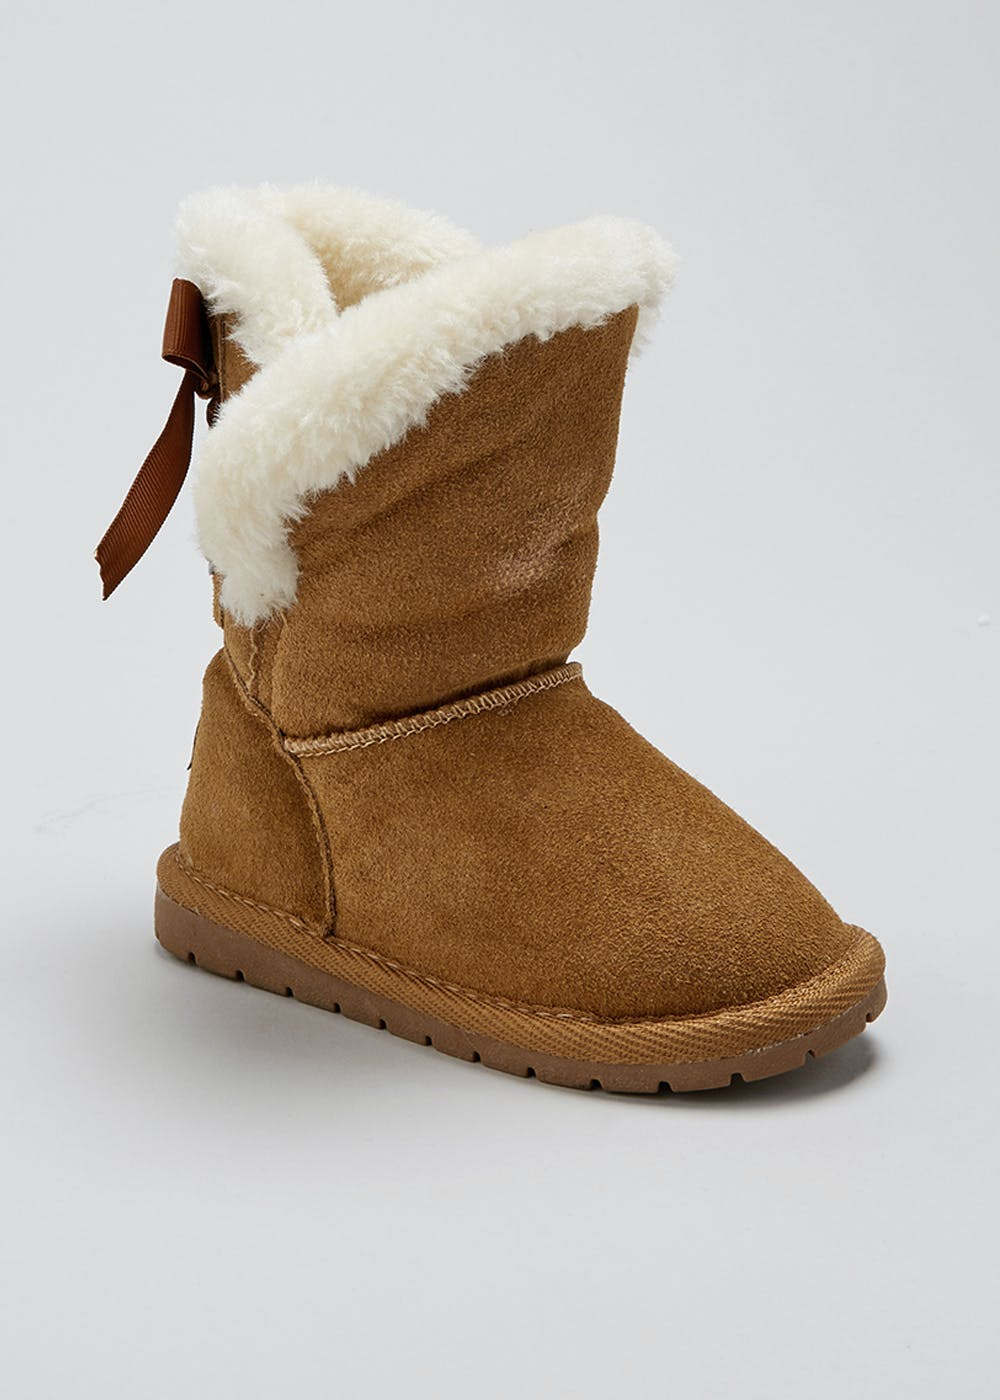 Real Suede Faux Fur Lined Boots Younger 4 9 Tan Matalan